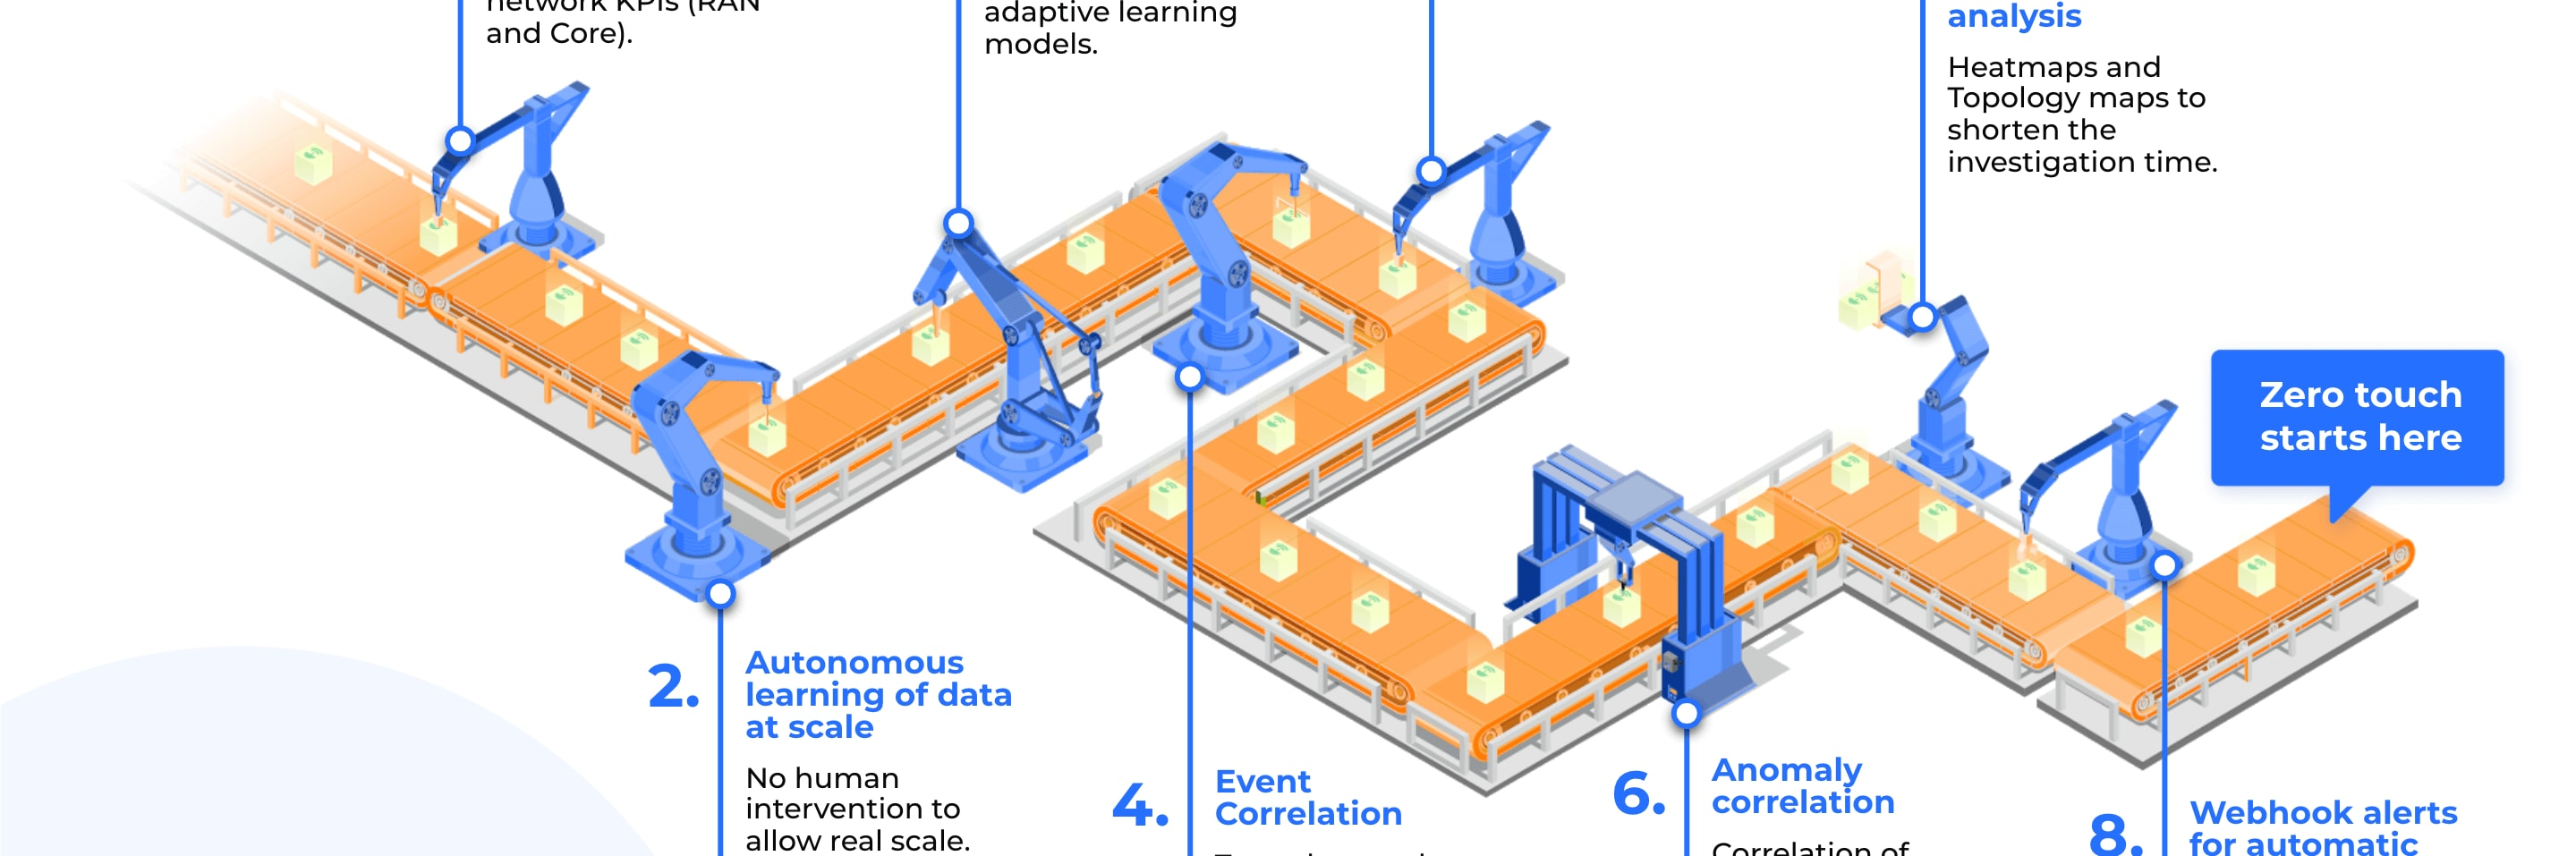 main image - The Route to Automated Remediation